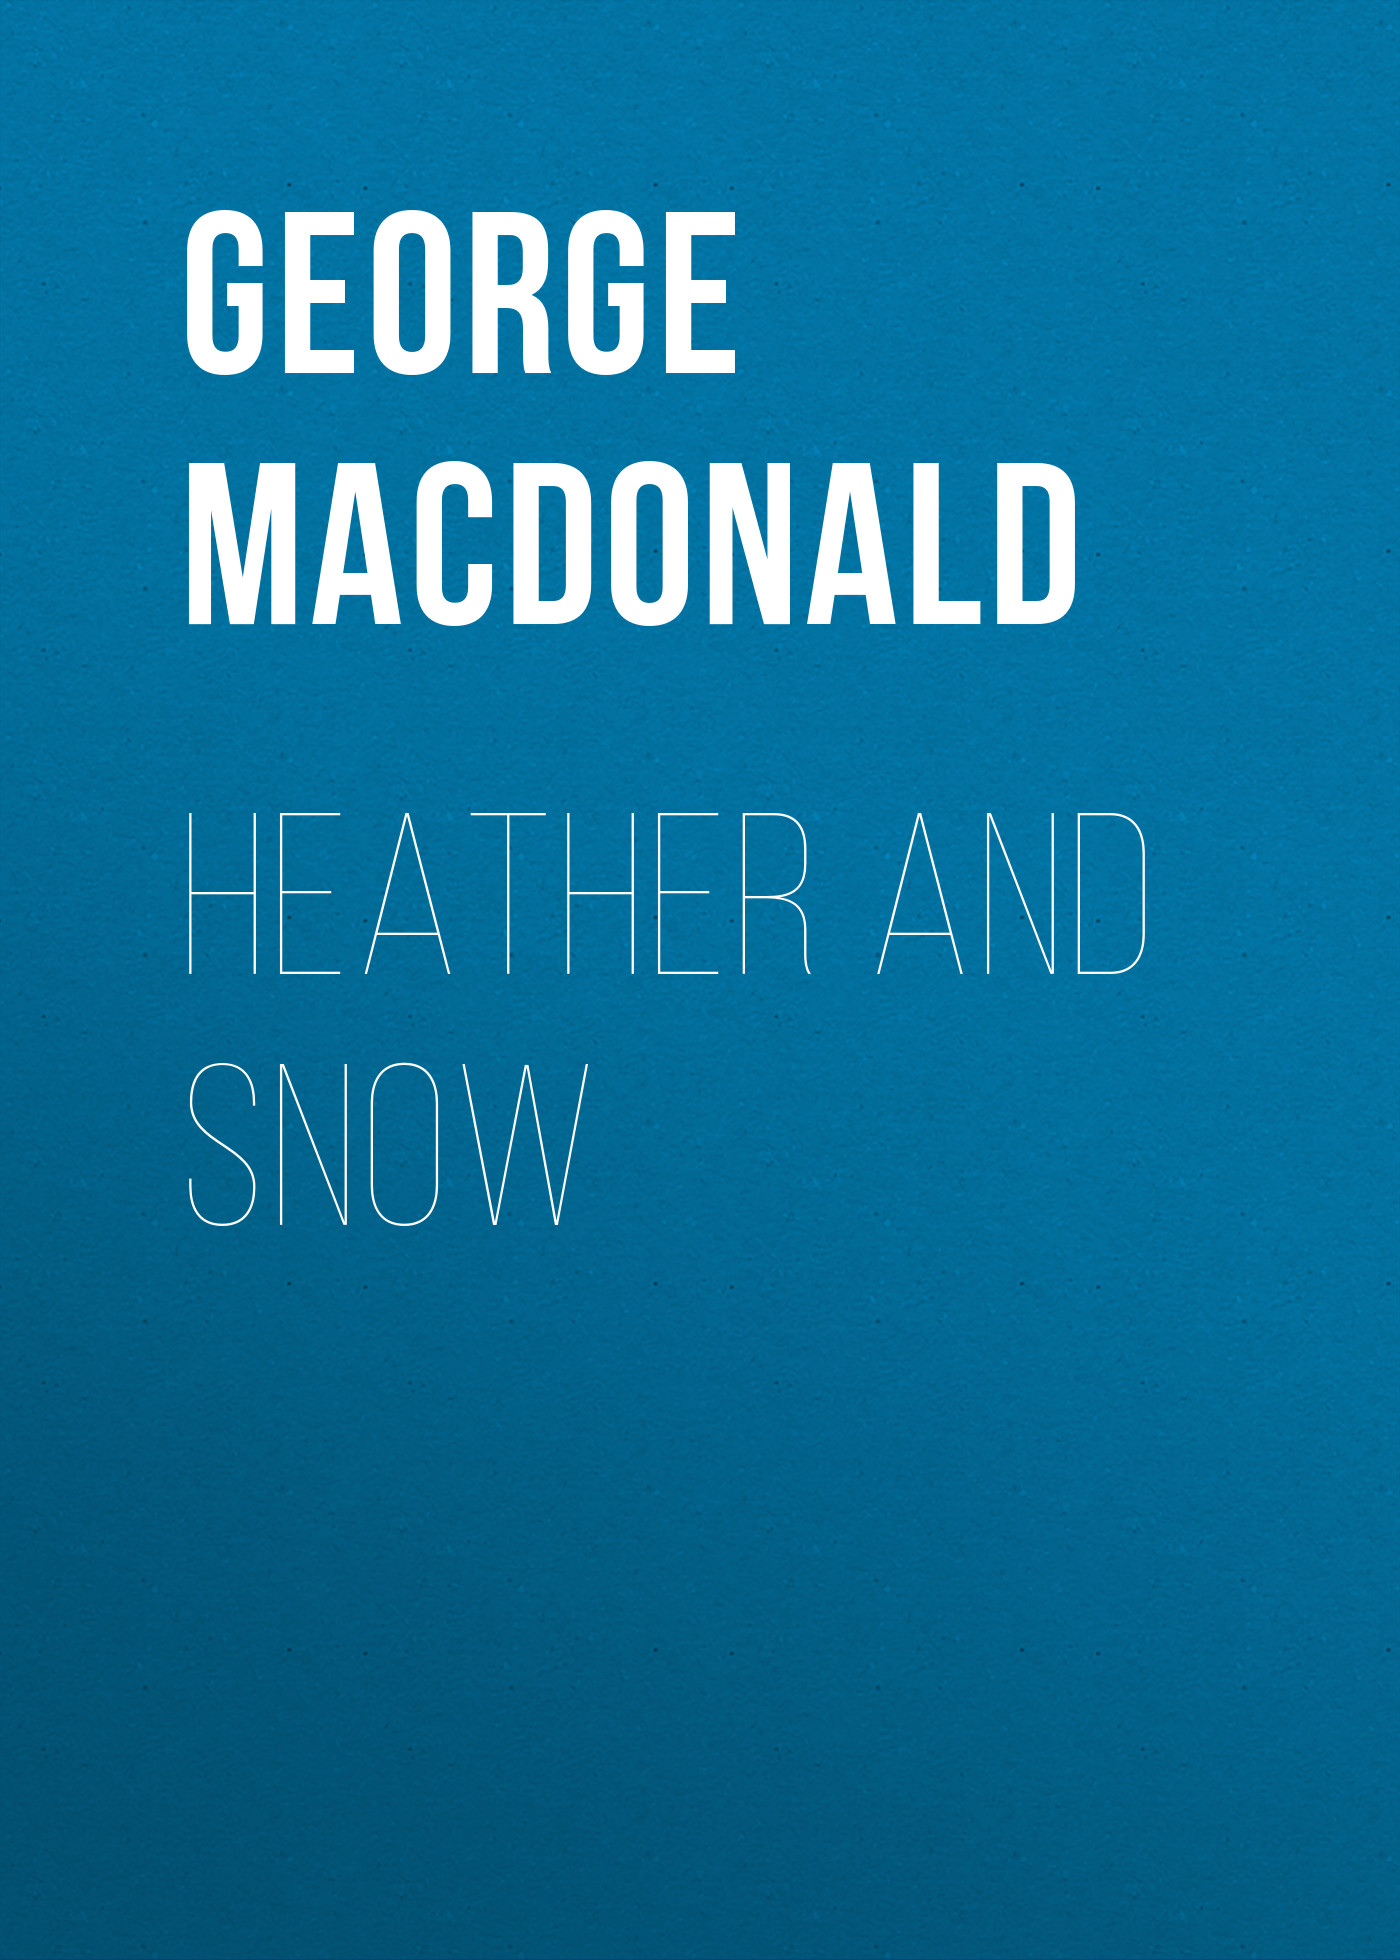 George MacDonald Heather and Snow свитер детский nike 666232 535 666232 535 891 405